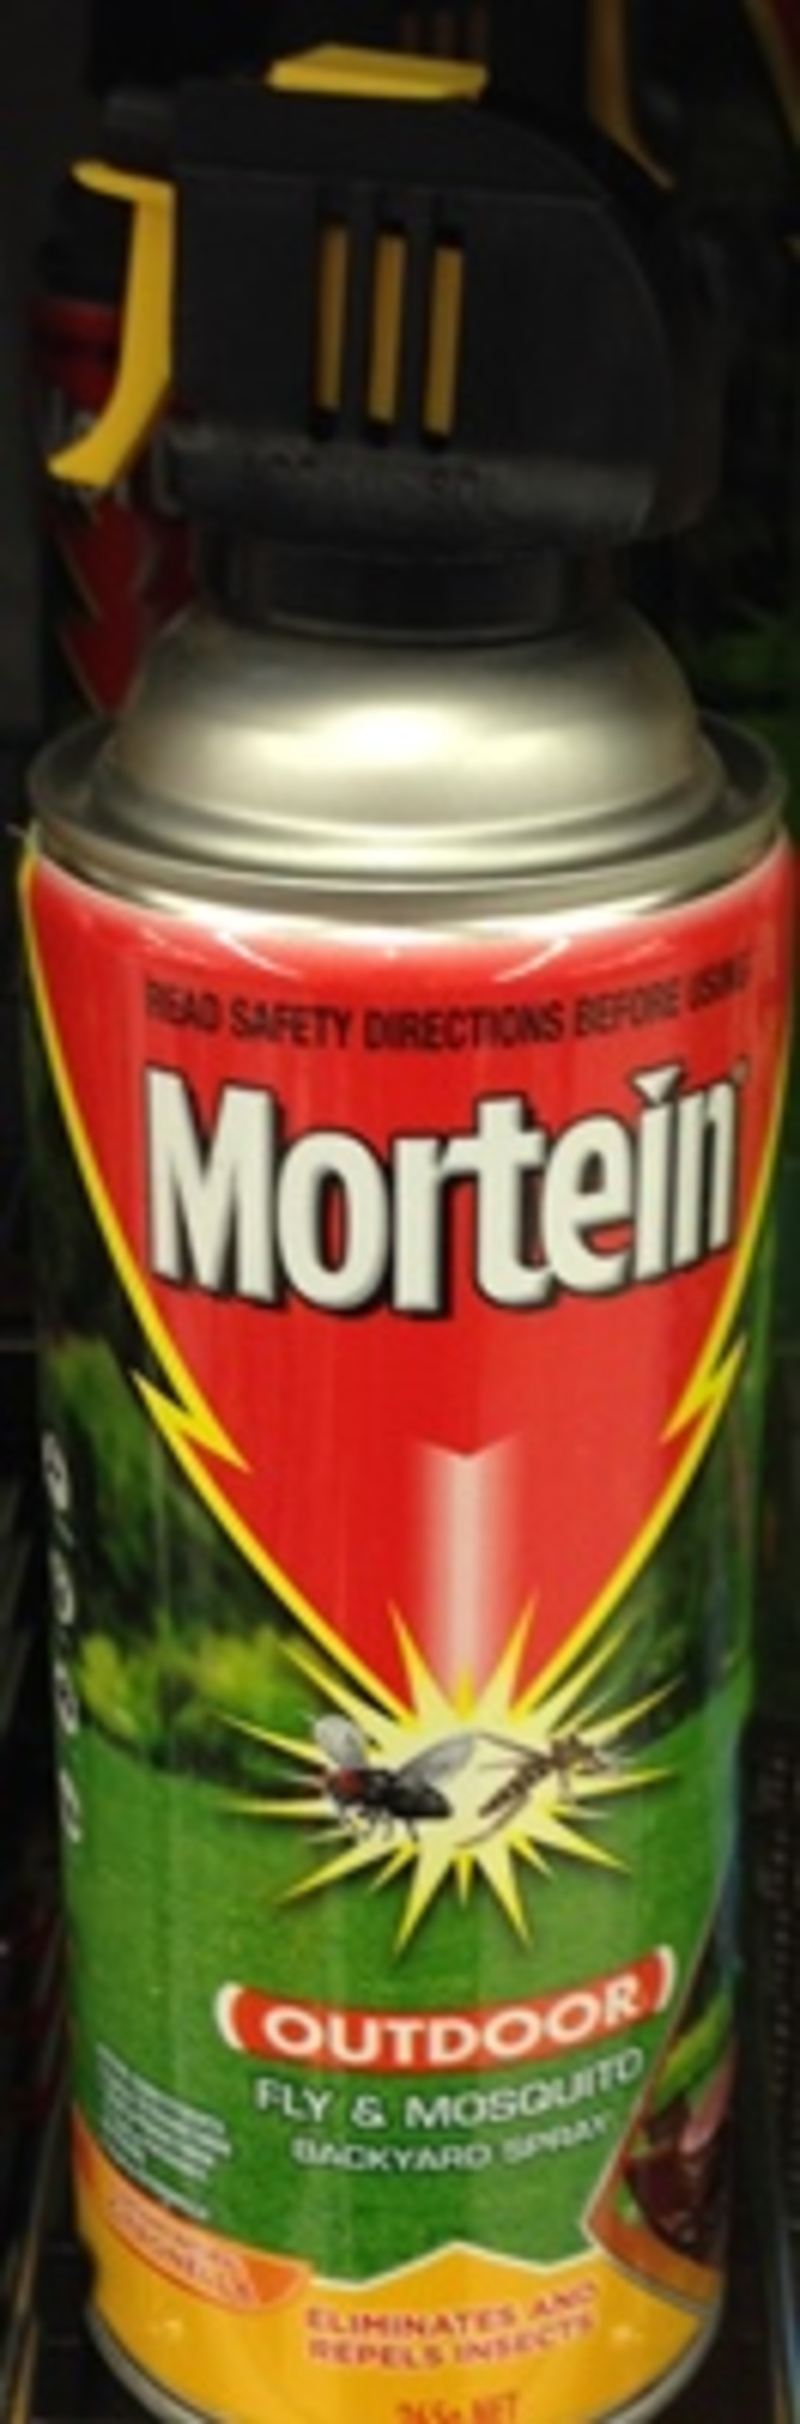 mortein,fly,and,mosquito,spray